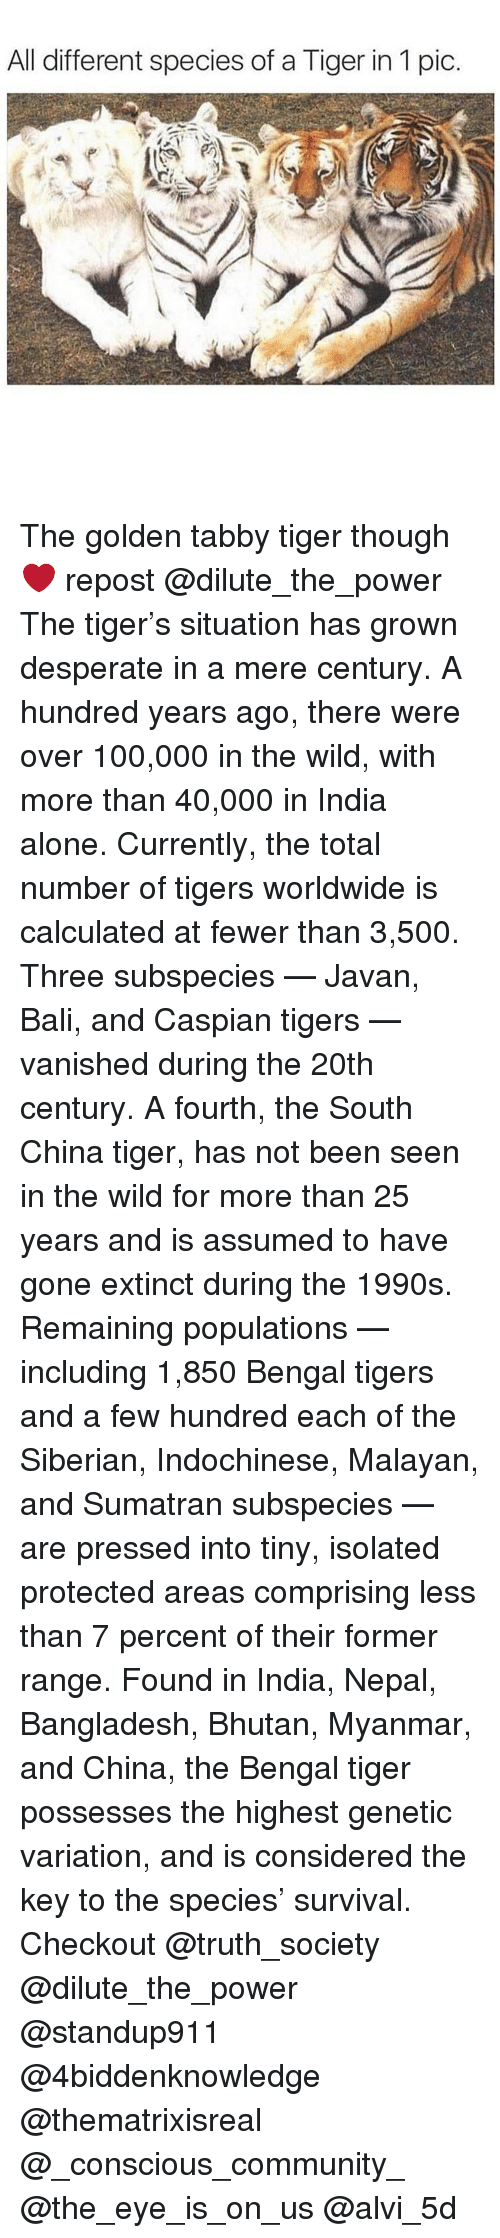 Bhutan: All different species of a Tiger in 1 pic The golden tabby tiger though ❤️ repost @dilute_the_power The tiger's situation has grown desperate in a mere century. A hundred years ago, there were over 100,000 in the wild, with more than 40,000 in India alone. Currently, the total number of tigers worldwide is calculated at fewer than 3,500. Three subspecies — Javan, Bali, and Caspian tigers — vanished during the 20th century. A fourth, the South China tiger, has not been seen in the wild for more than 25 years and is assumed to have gone extinct during the 1990s. Remaining populations — including 1,850 Bengal tigers and a few hundred each of the Siberian, Indochinese, Malayan, and Sumatran subspecies — are pressed into tiny, isolated protected areas comprising less than 7 percent of their former range. Found in India, Nepal, Bangladesh, Bhutan, Myanmar, and China, the Bengal tiger possesses the highest genetic variation, and is considered the key to the species' survival. Checkout @truth_society @dilute_the_power @standup911 @4biddenknowledge @thematrixisreal @_conscious_community_ @the_eye_is_on_us @alvi_5d